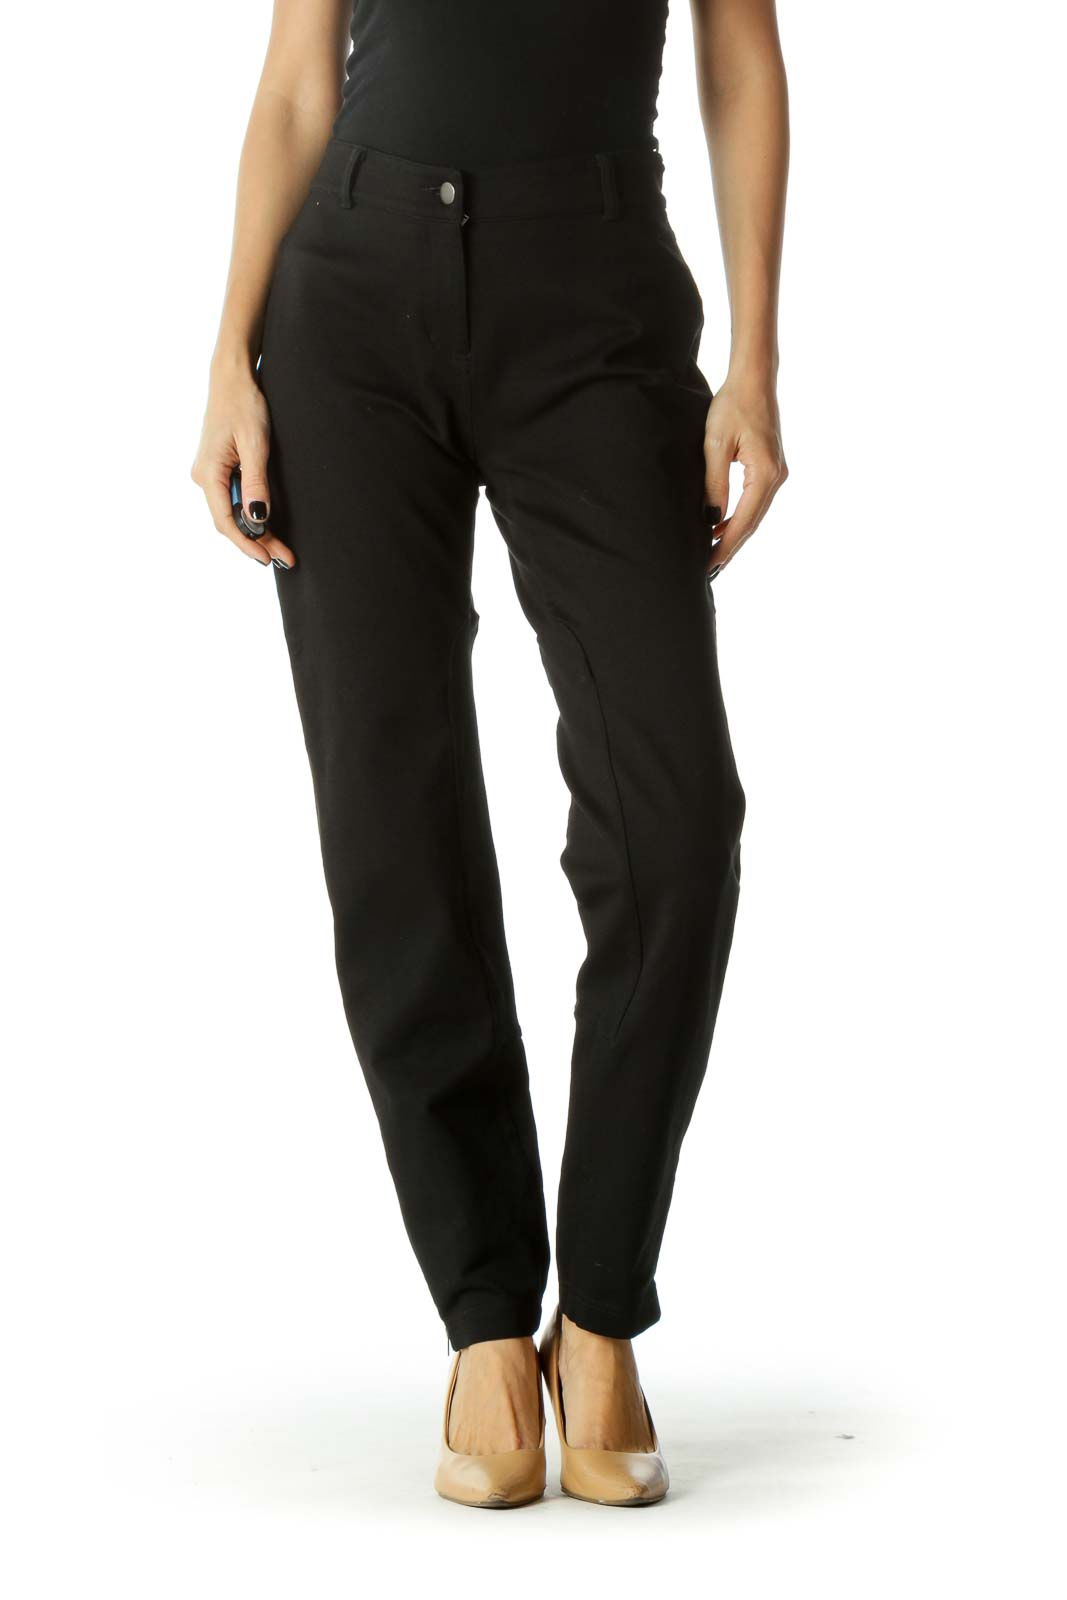 Black Zippered Leg Pocketed Tapered Pants